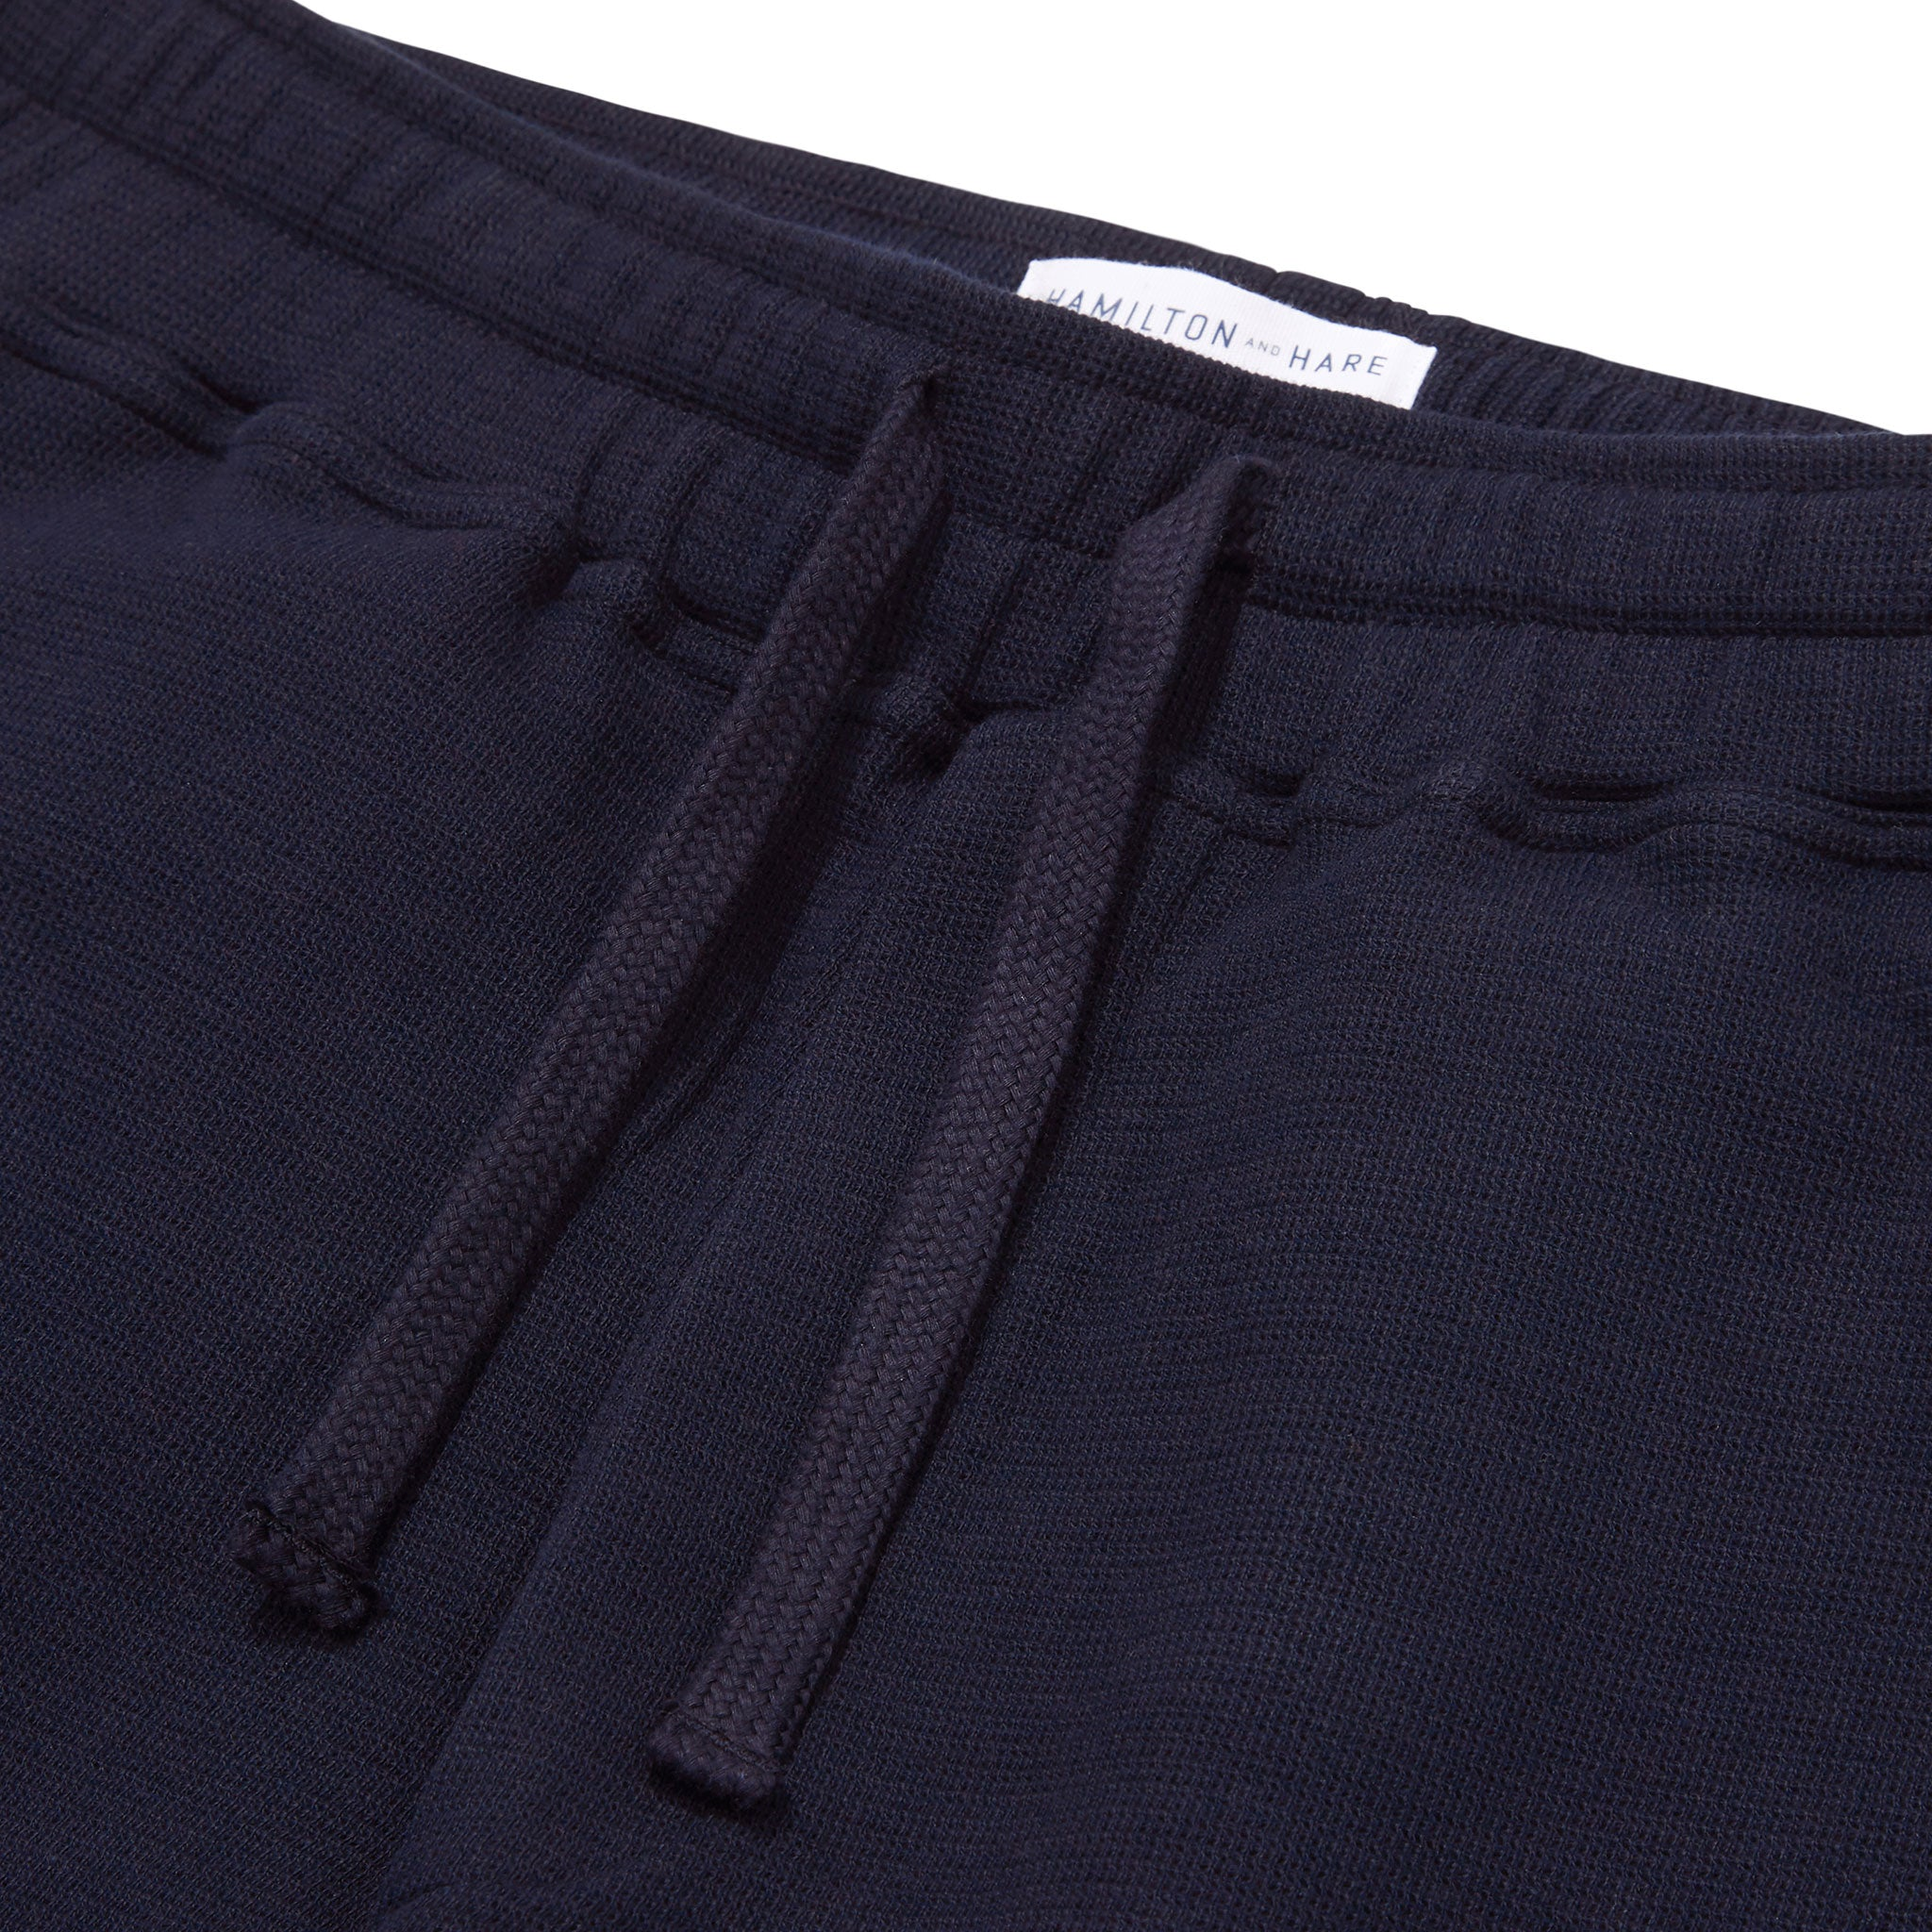 Hamilton and Hare Travel Trouser Navy